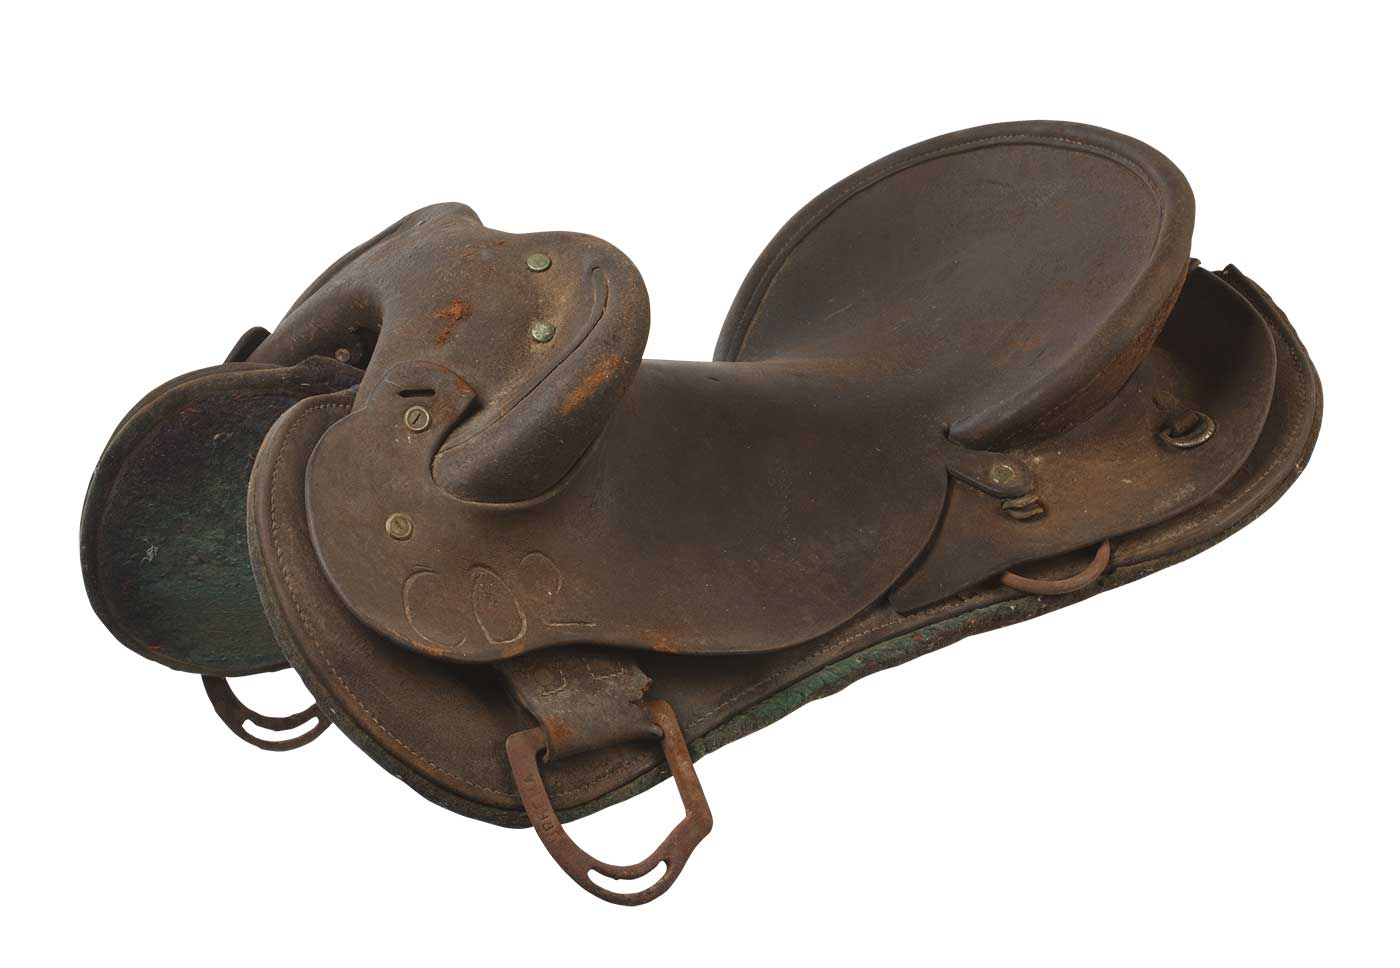 Weathered-looking leather horse saddle. - click to view larger image